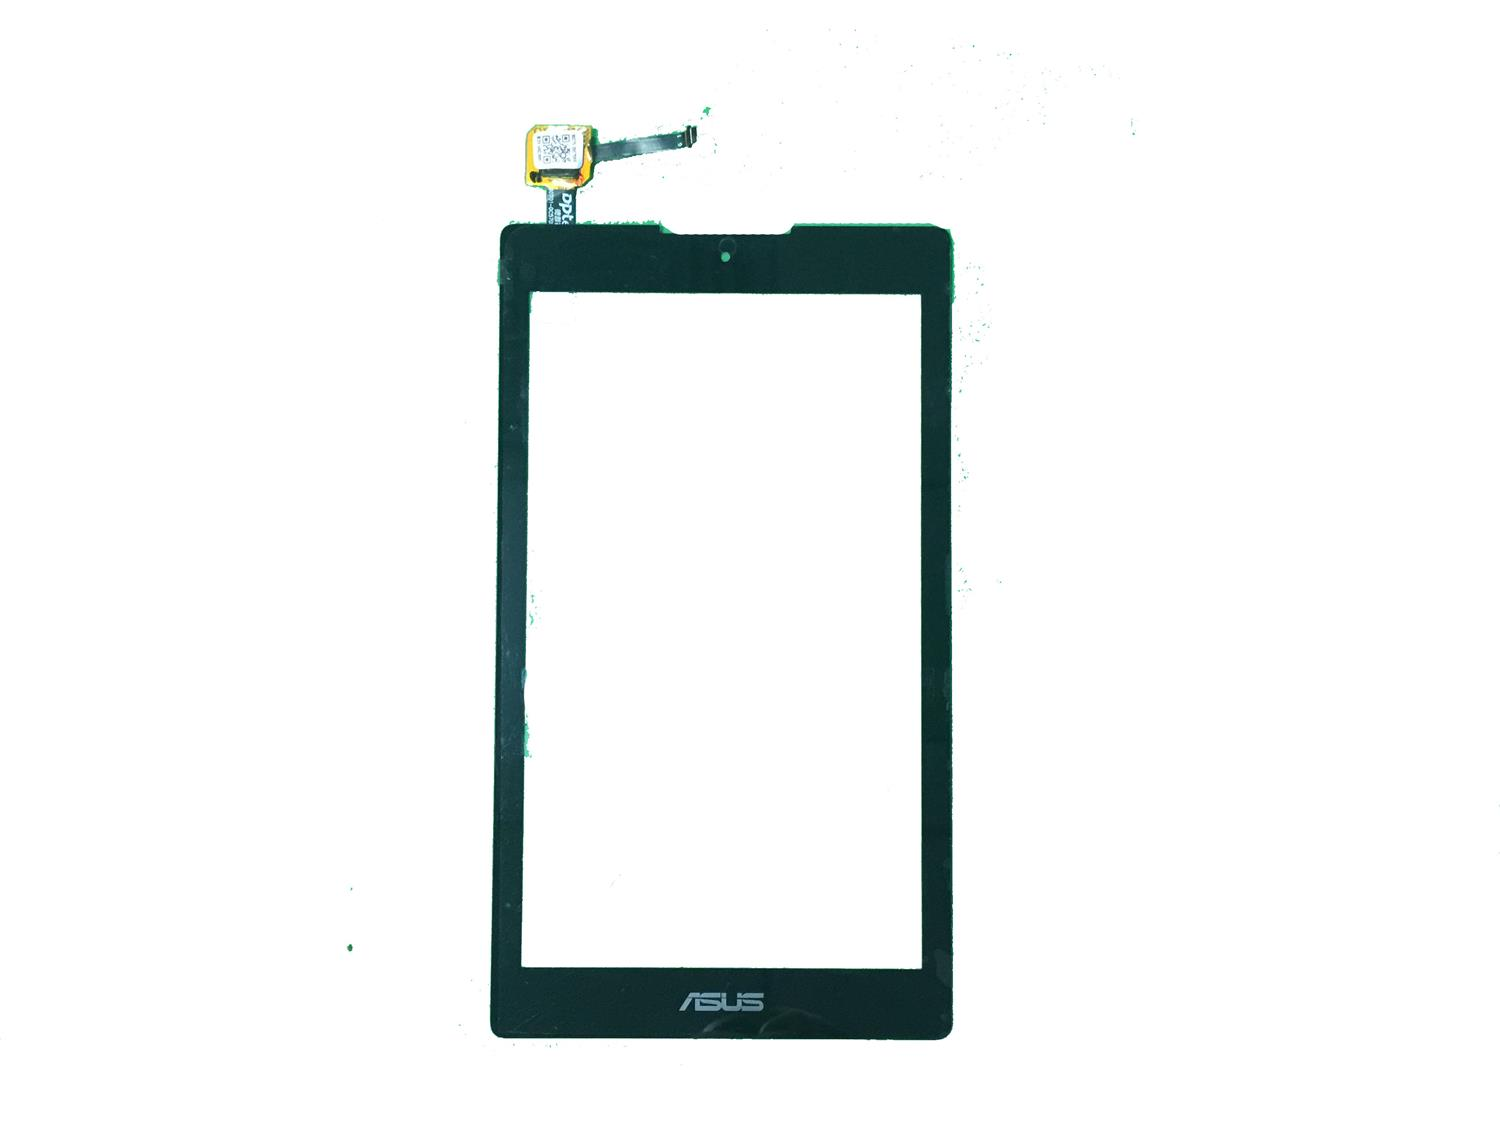 Asus Original Touch Screen Digitizer Glass Lens Panel replacement parts For ASUS ZenPad C 7.0 Z170MG Z170 MG tablet Touch panel